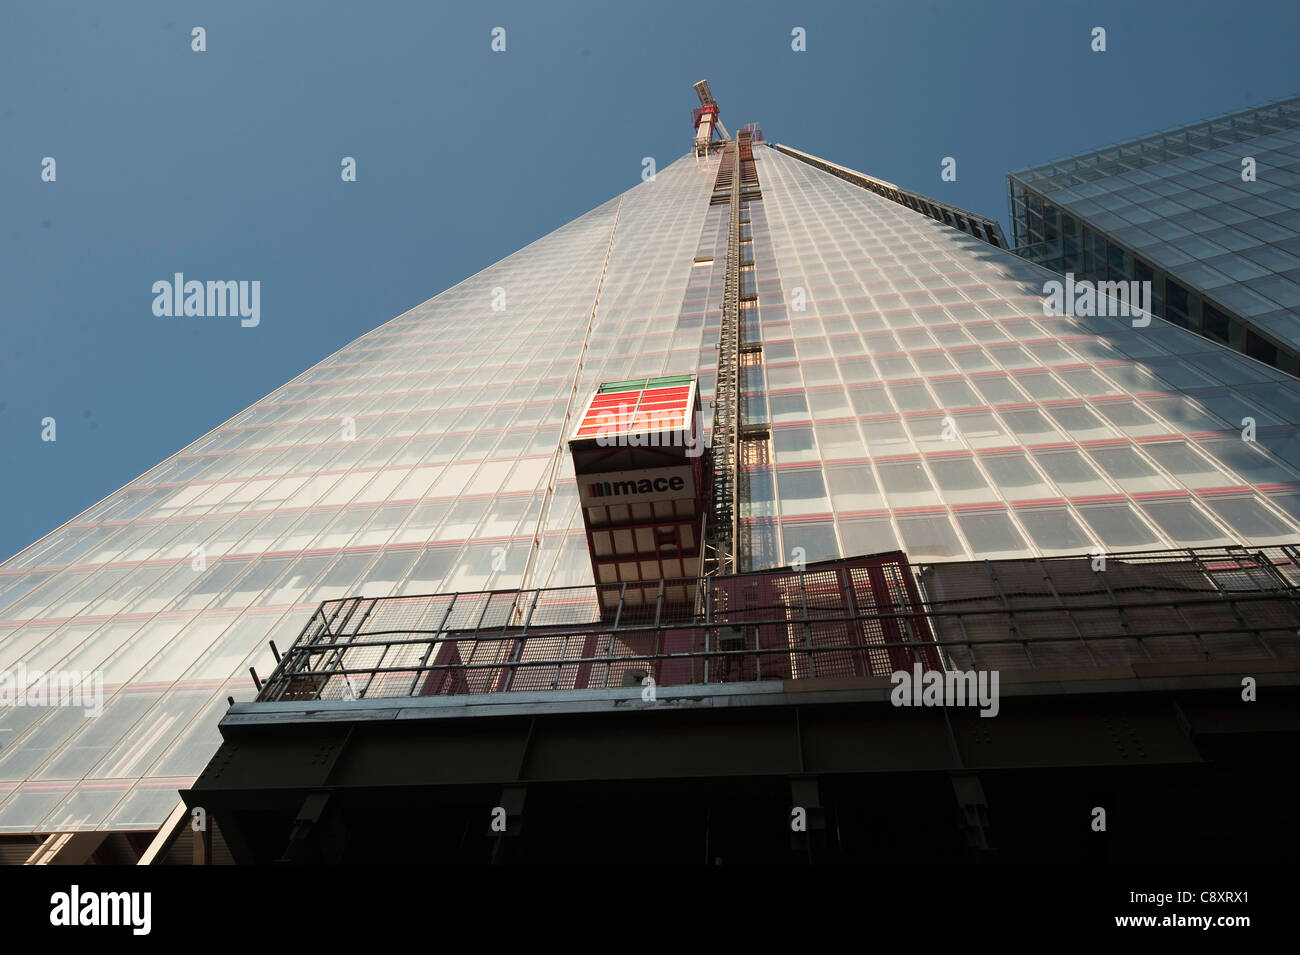 builders lift crane on the side of The Shard building in London during construction - Stock Image